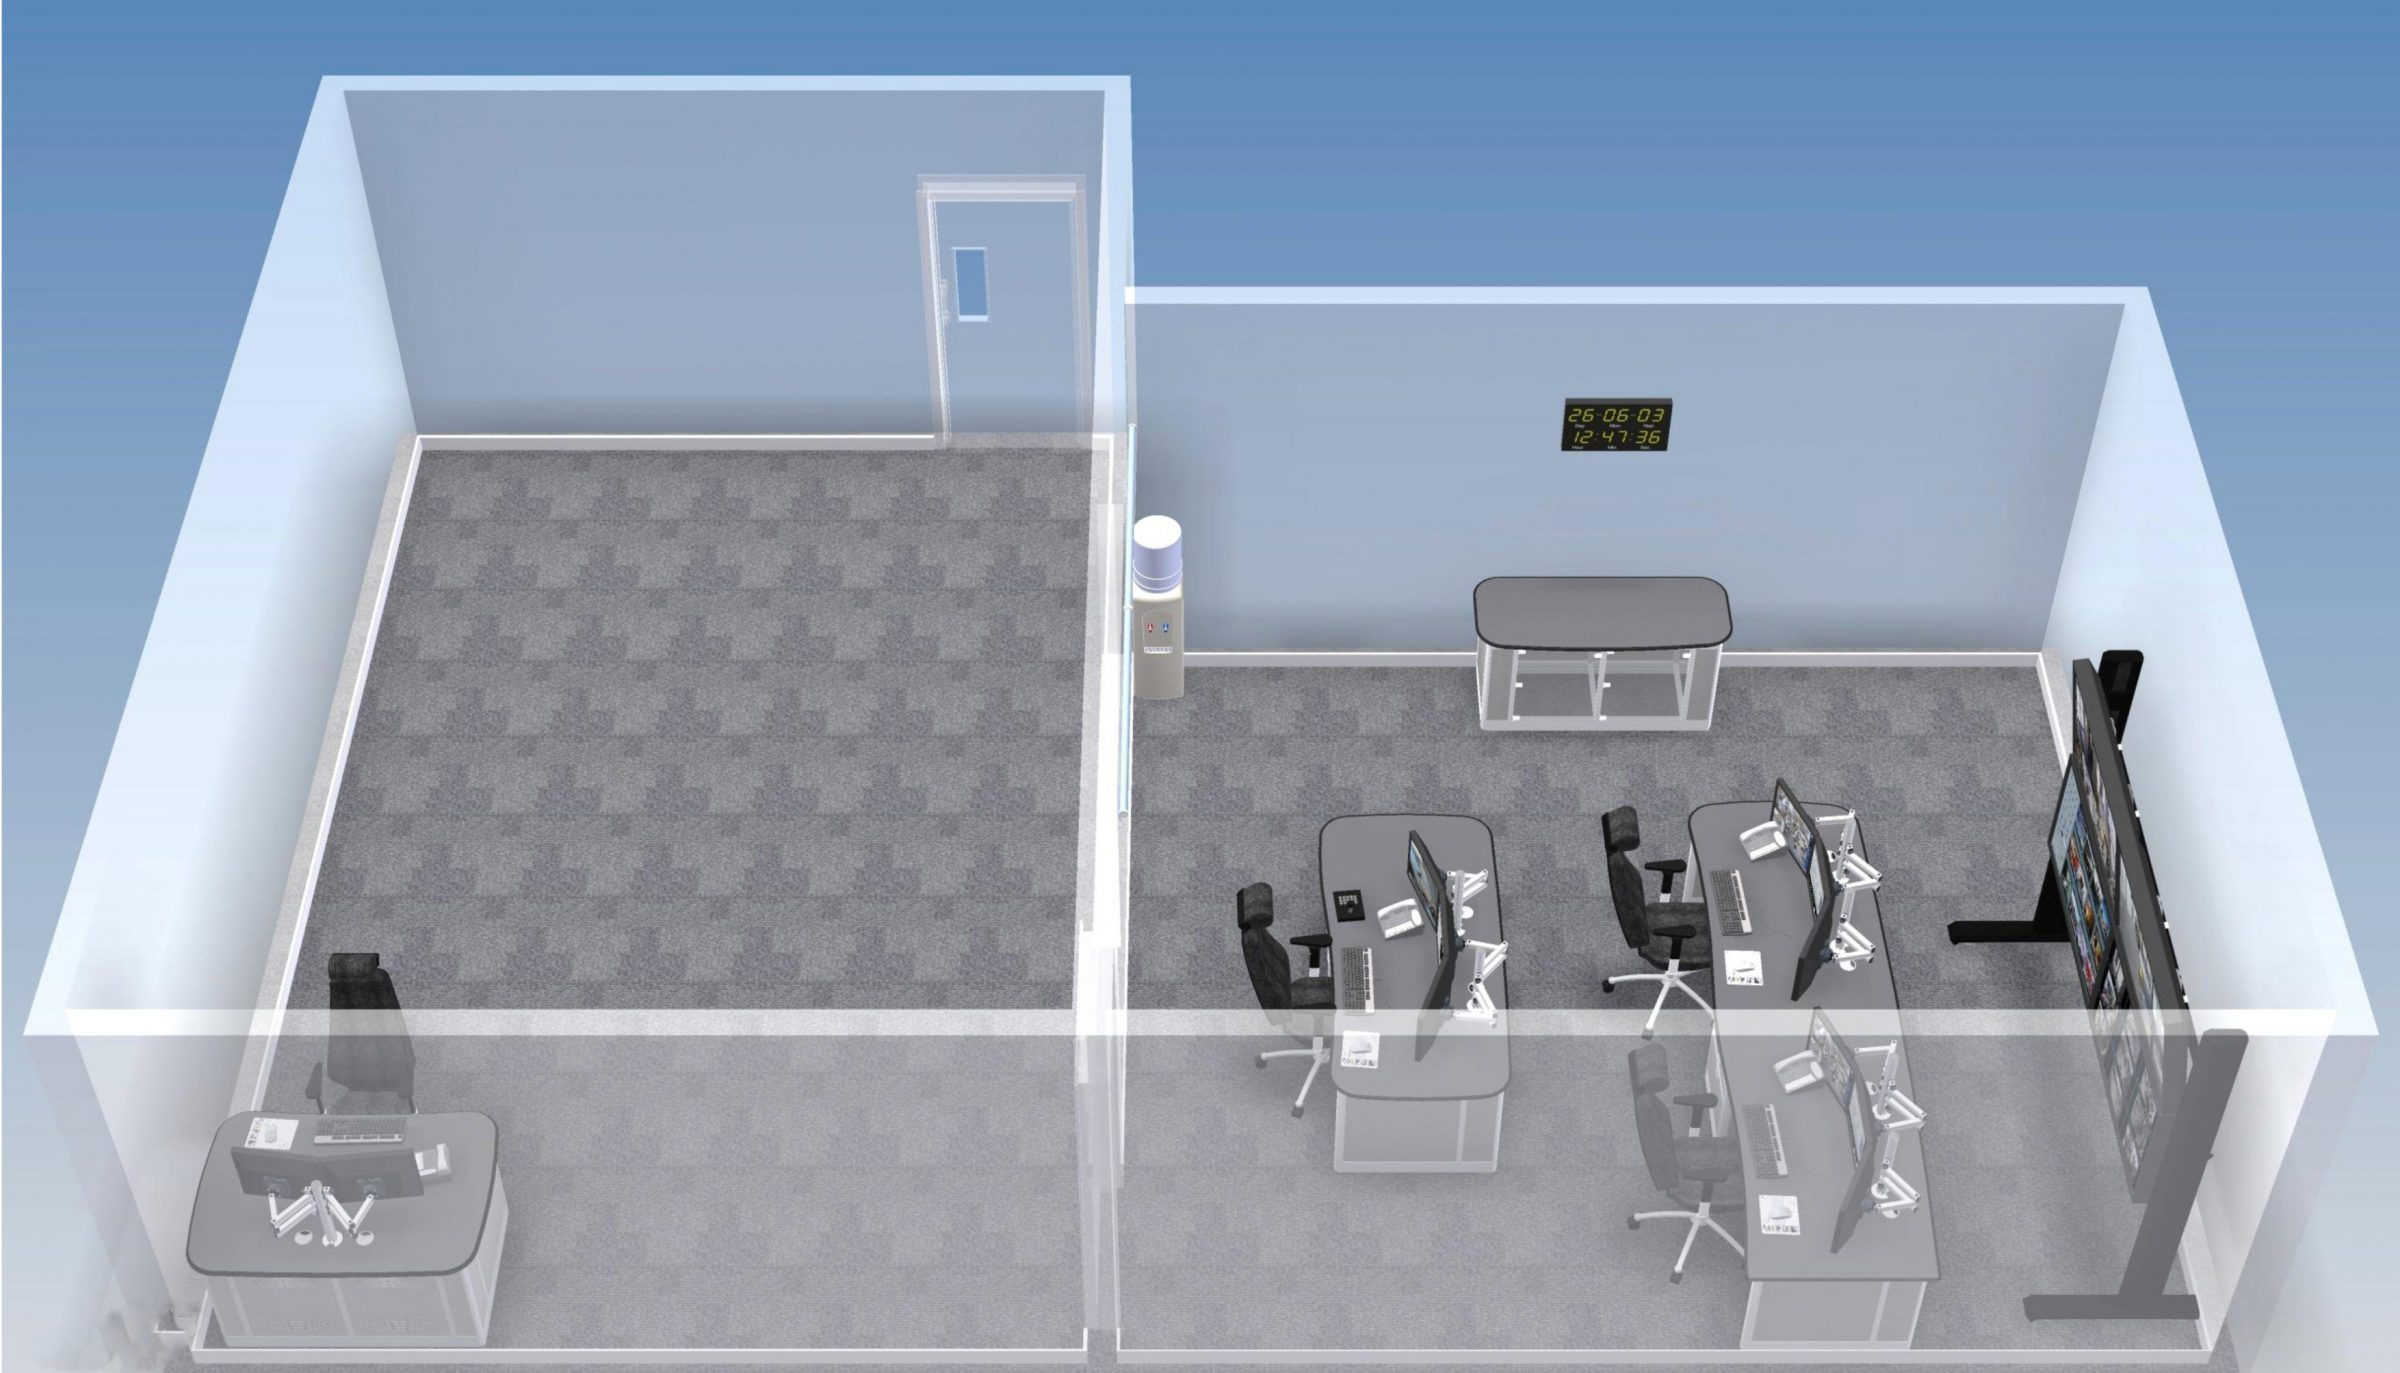 parramatta control room render whole room